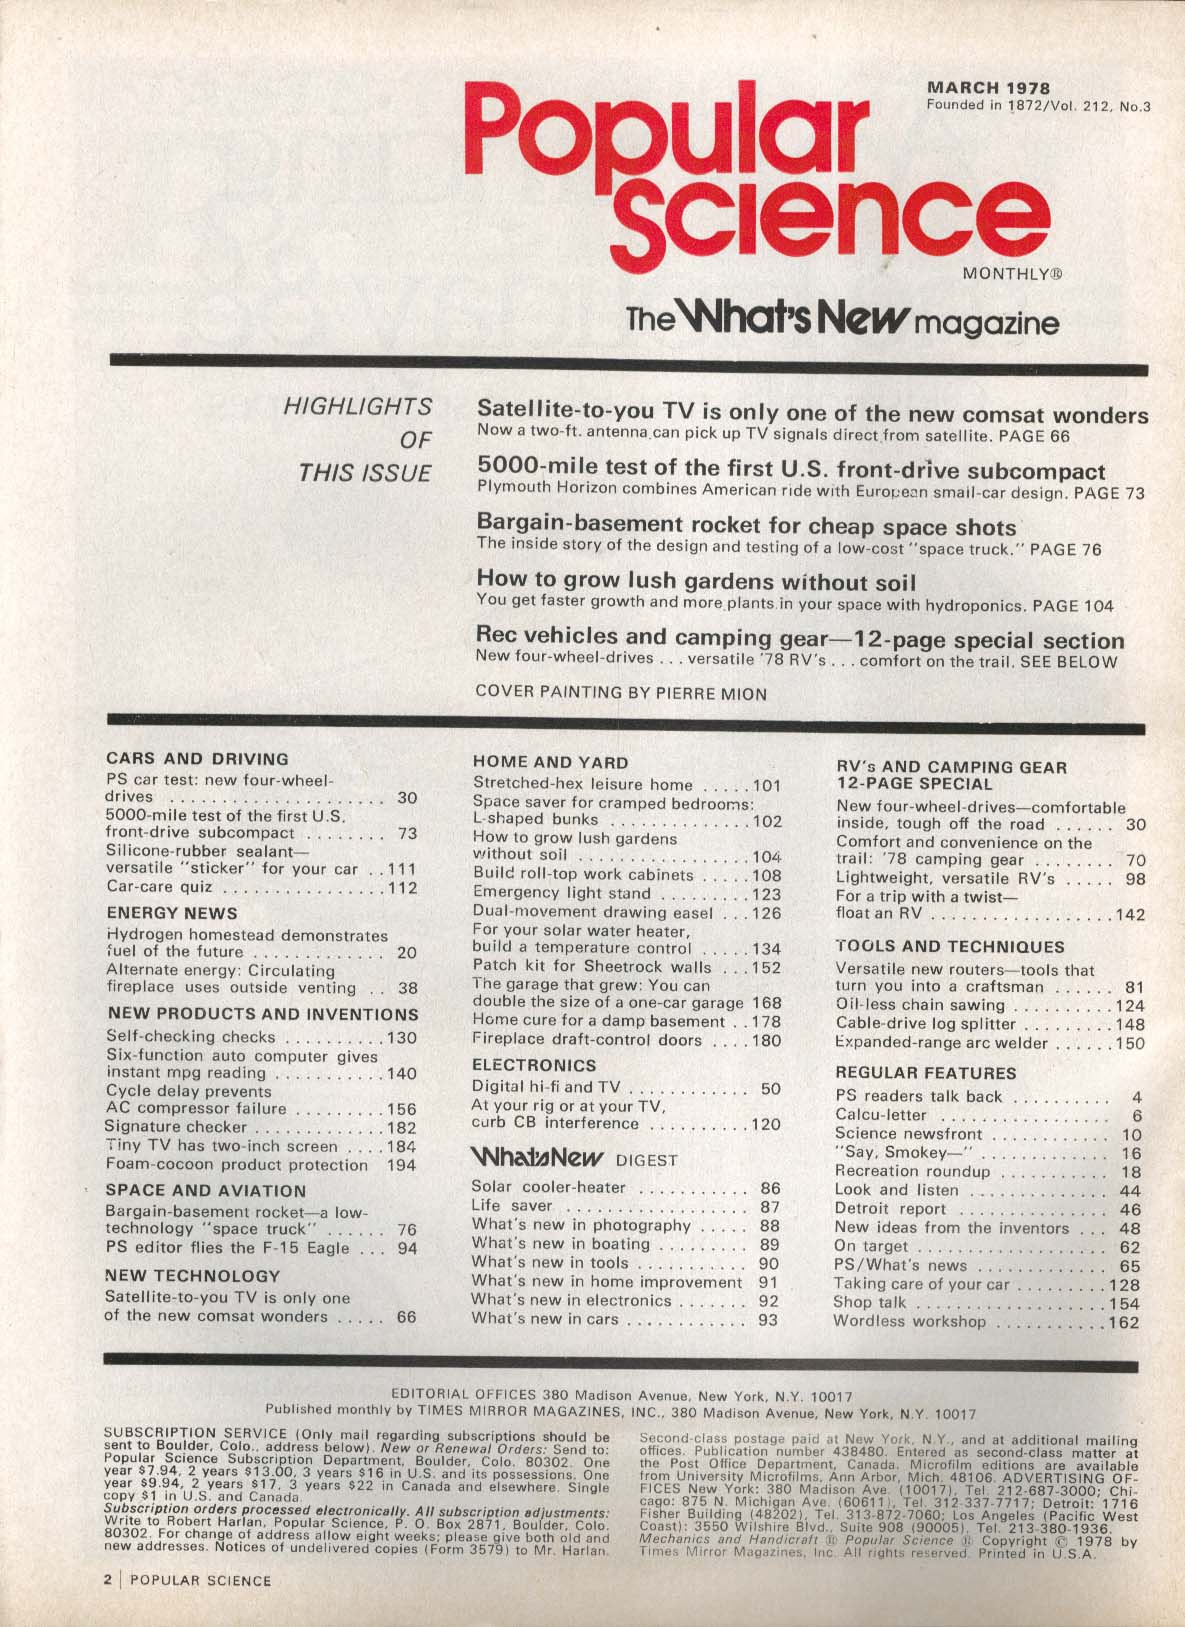 POPULAR SCIENCE Silicone-rubber sealant F-15 Eagle AC compressor failure 3 1978